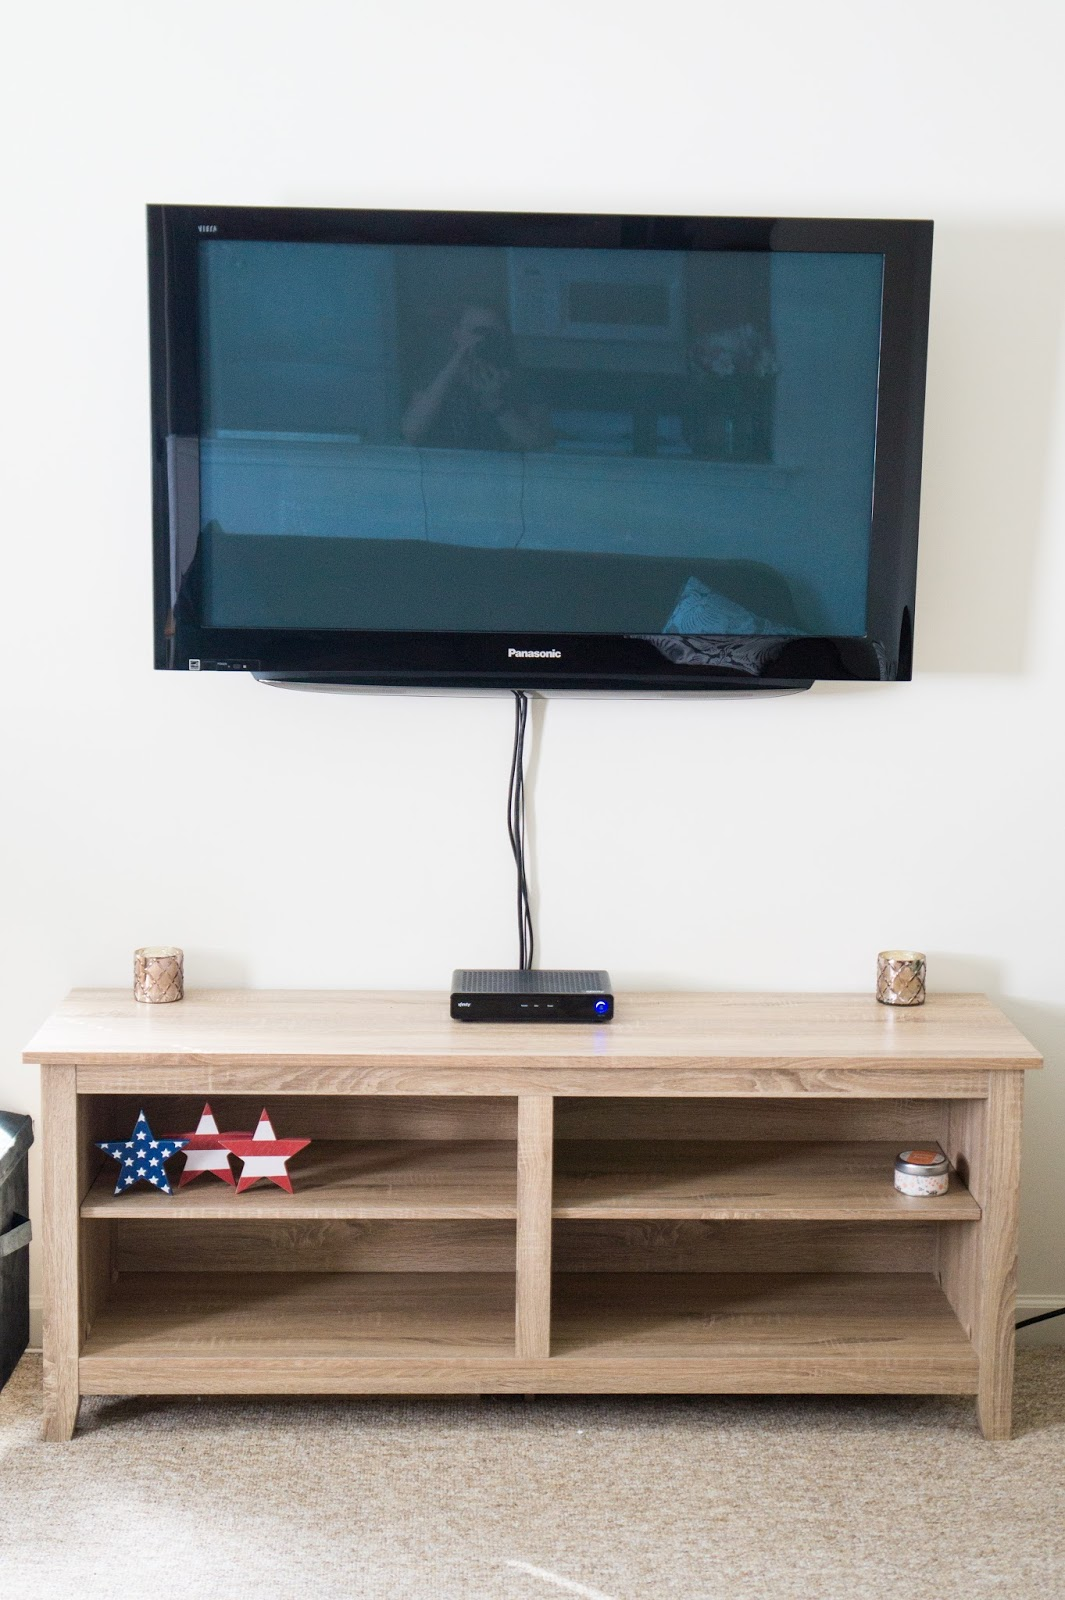 TV mounted on a wall over a natural wood TV stand.